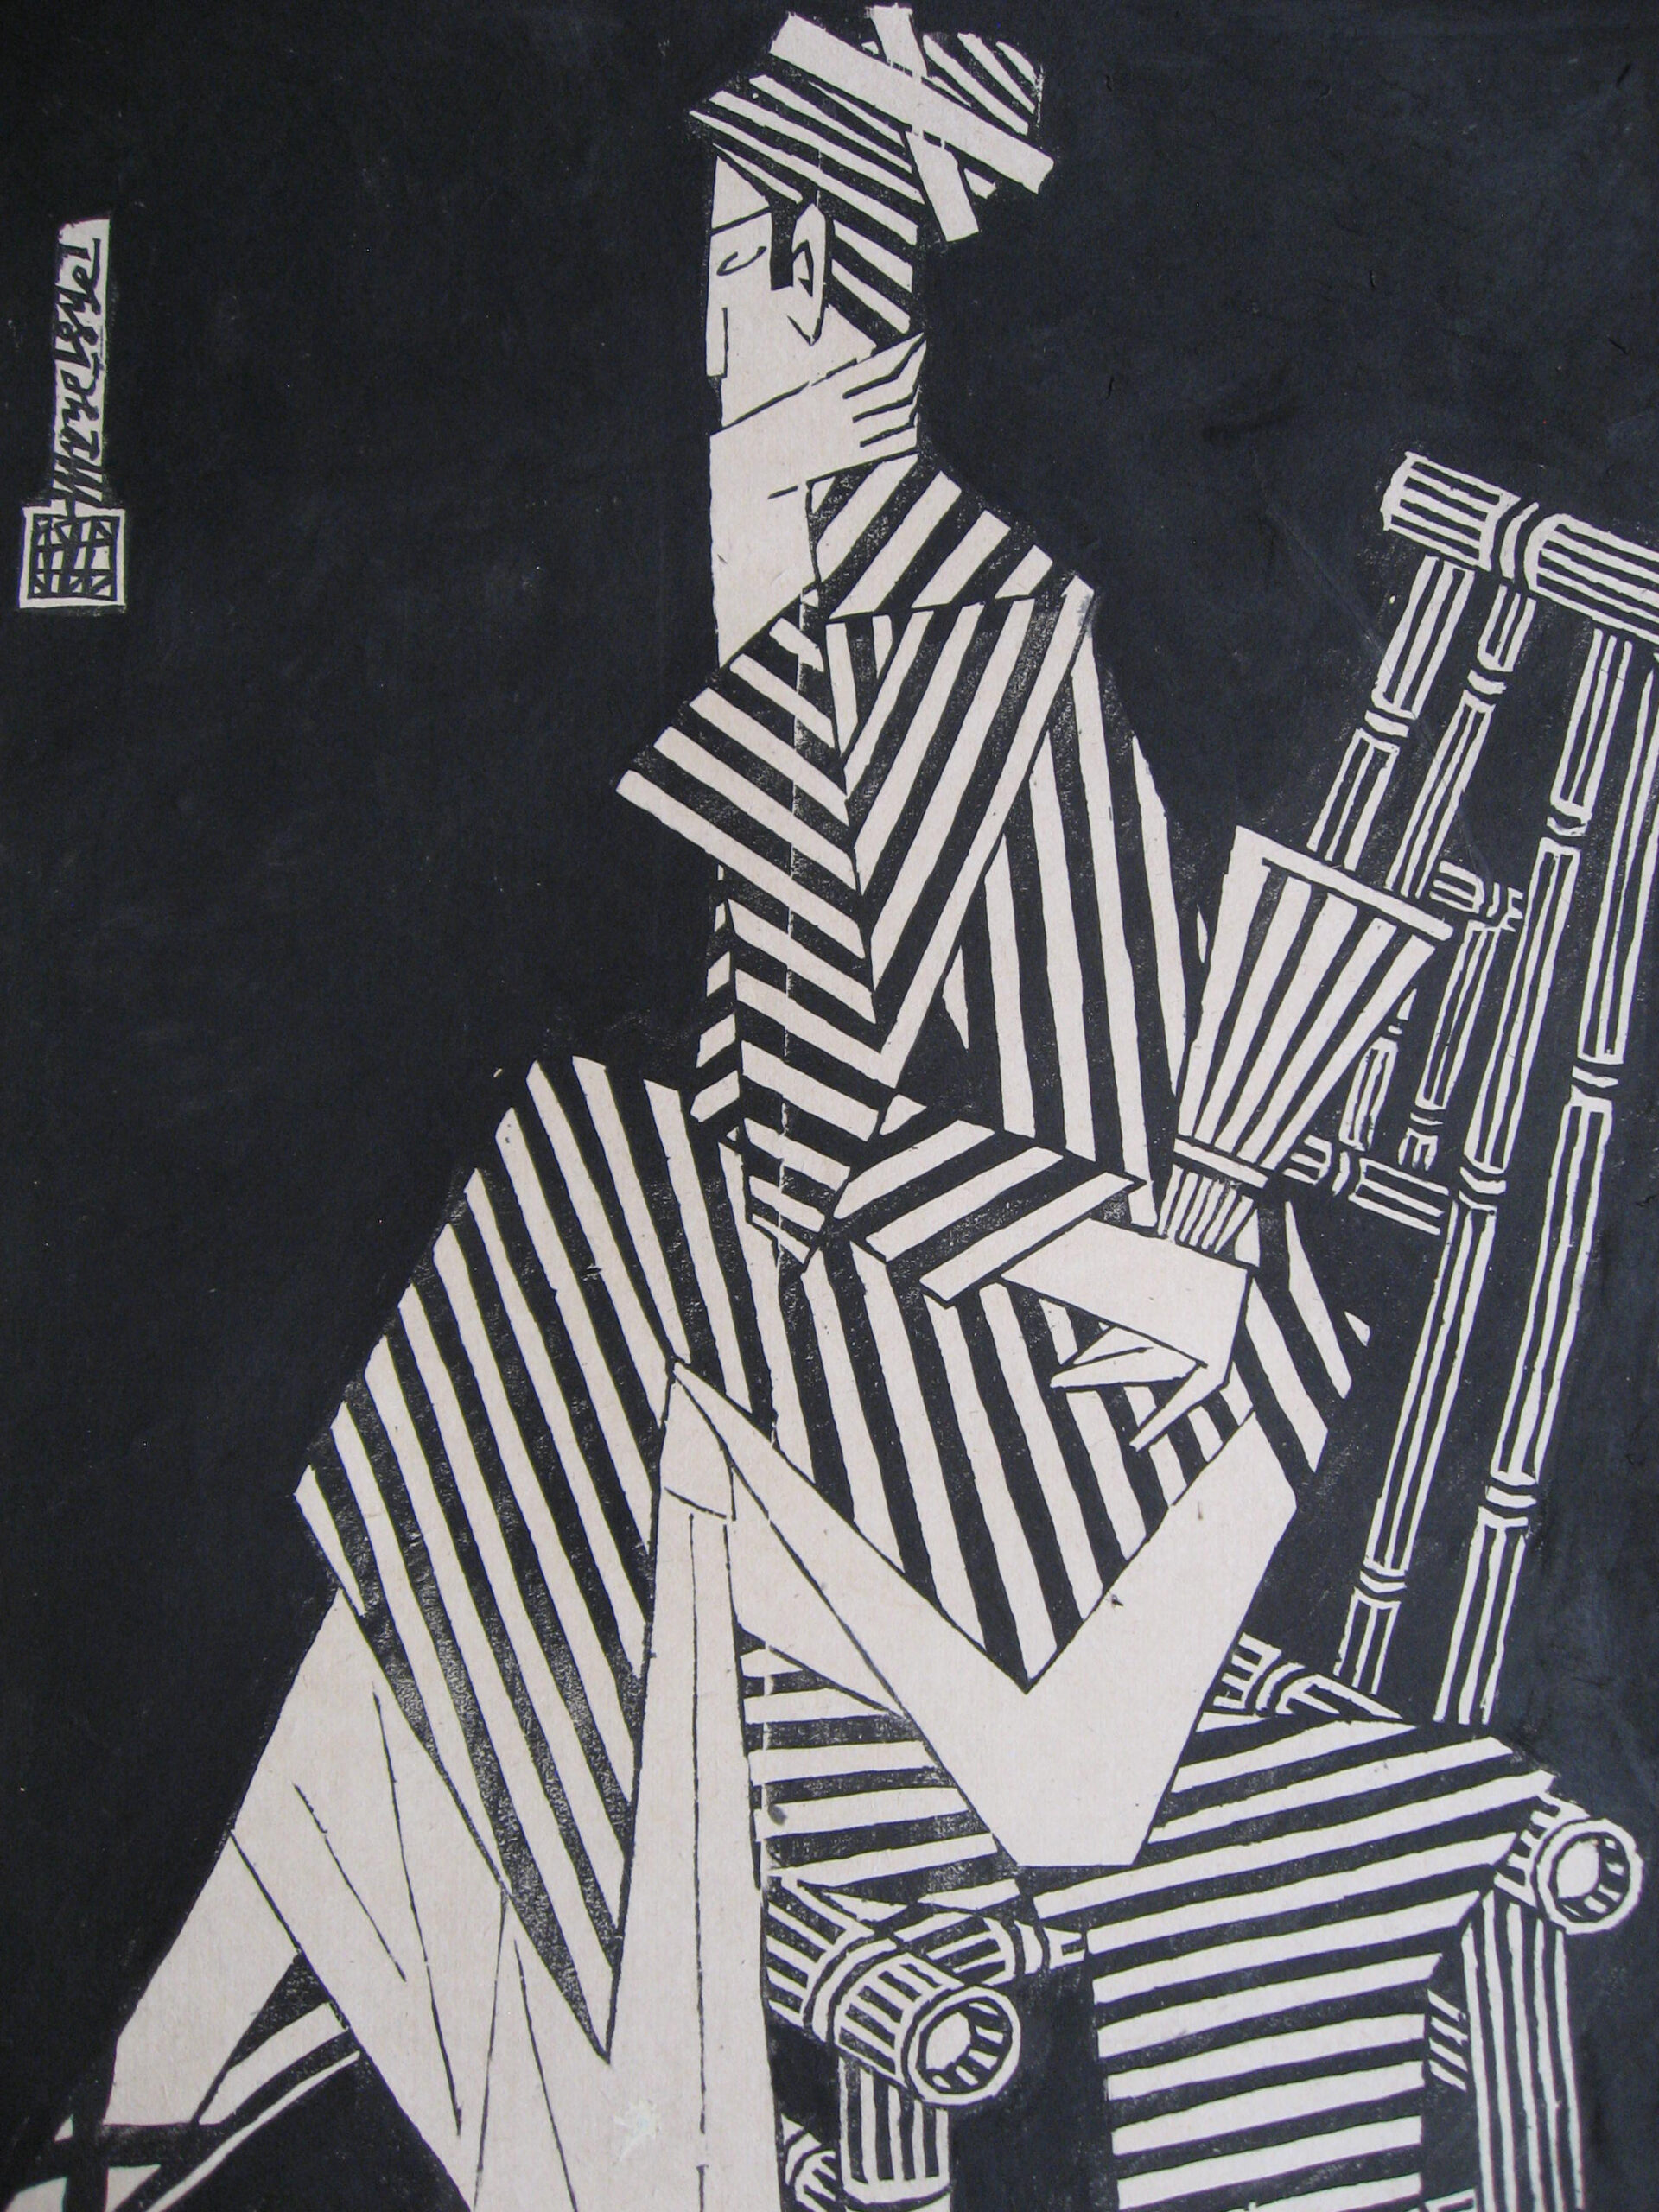 Deep in Thought by Phung Pham, limited edition woodblock print, 2003, 64 x 43 cm